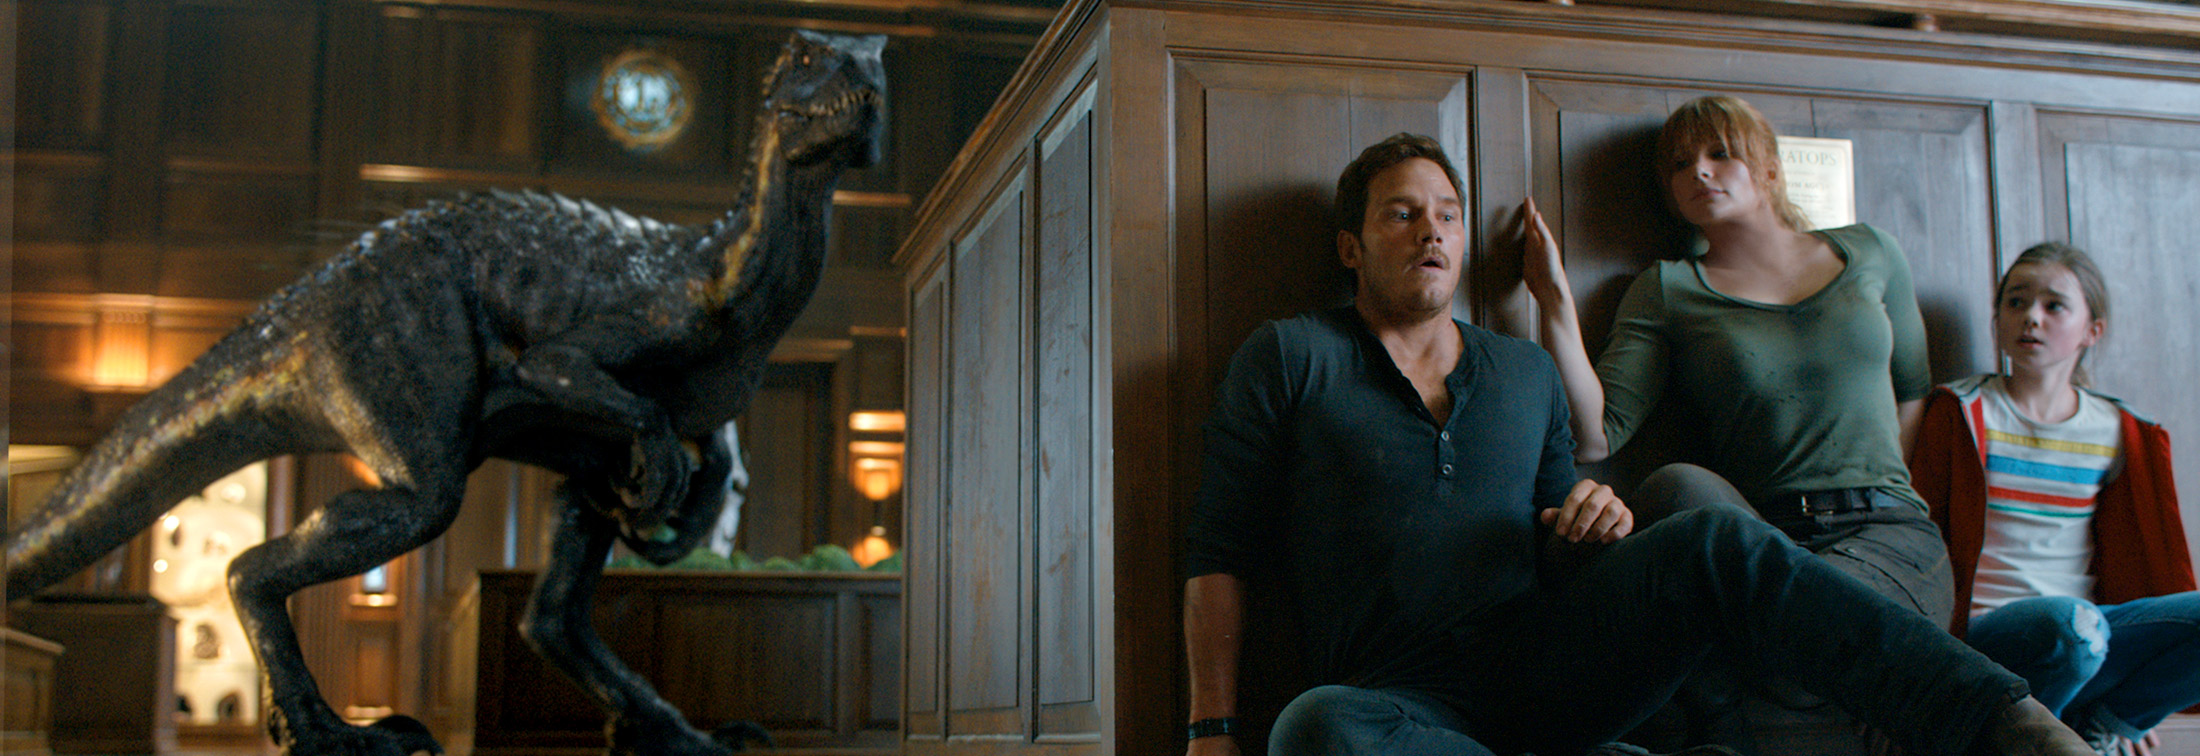 Jurassic World: Fallen Kingdom - An extinction-level event for the Jurassic franchise